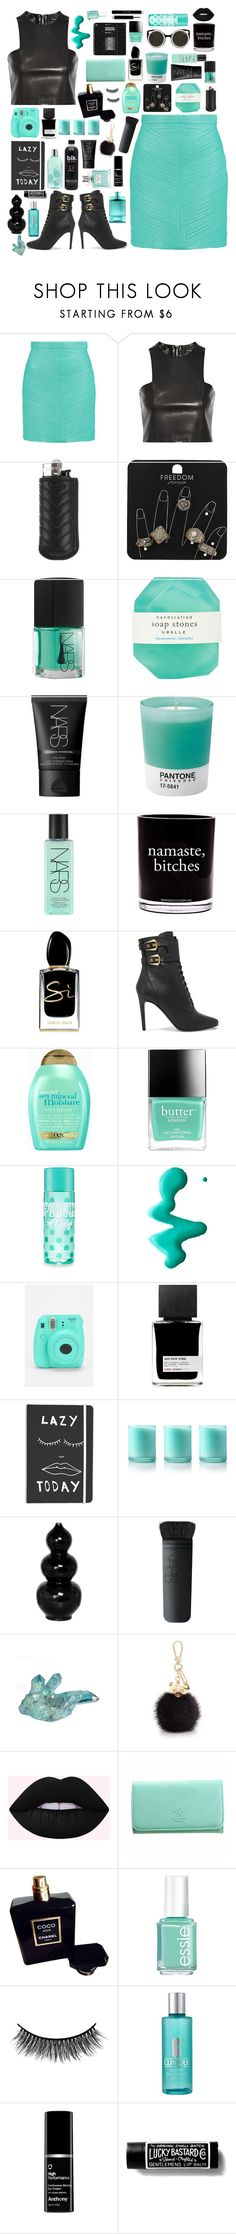 """""""Need Me"""" by dailyoutfits0113 ❤ liked on Polyvore featuring Balmain, Ateliers Ruby, Topshop, NARS Cosmetics, Pelle, Pantone, Damselfly Candles, Giorgio Armani, Organix and Butter London"""